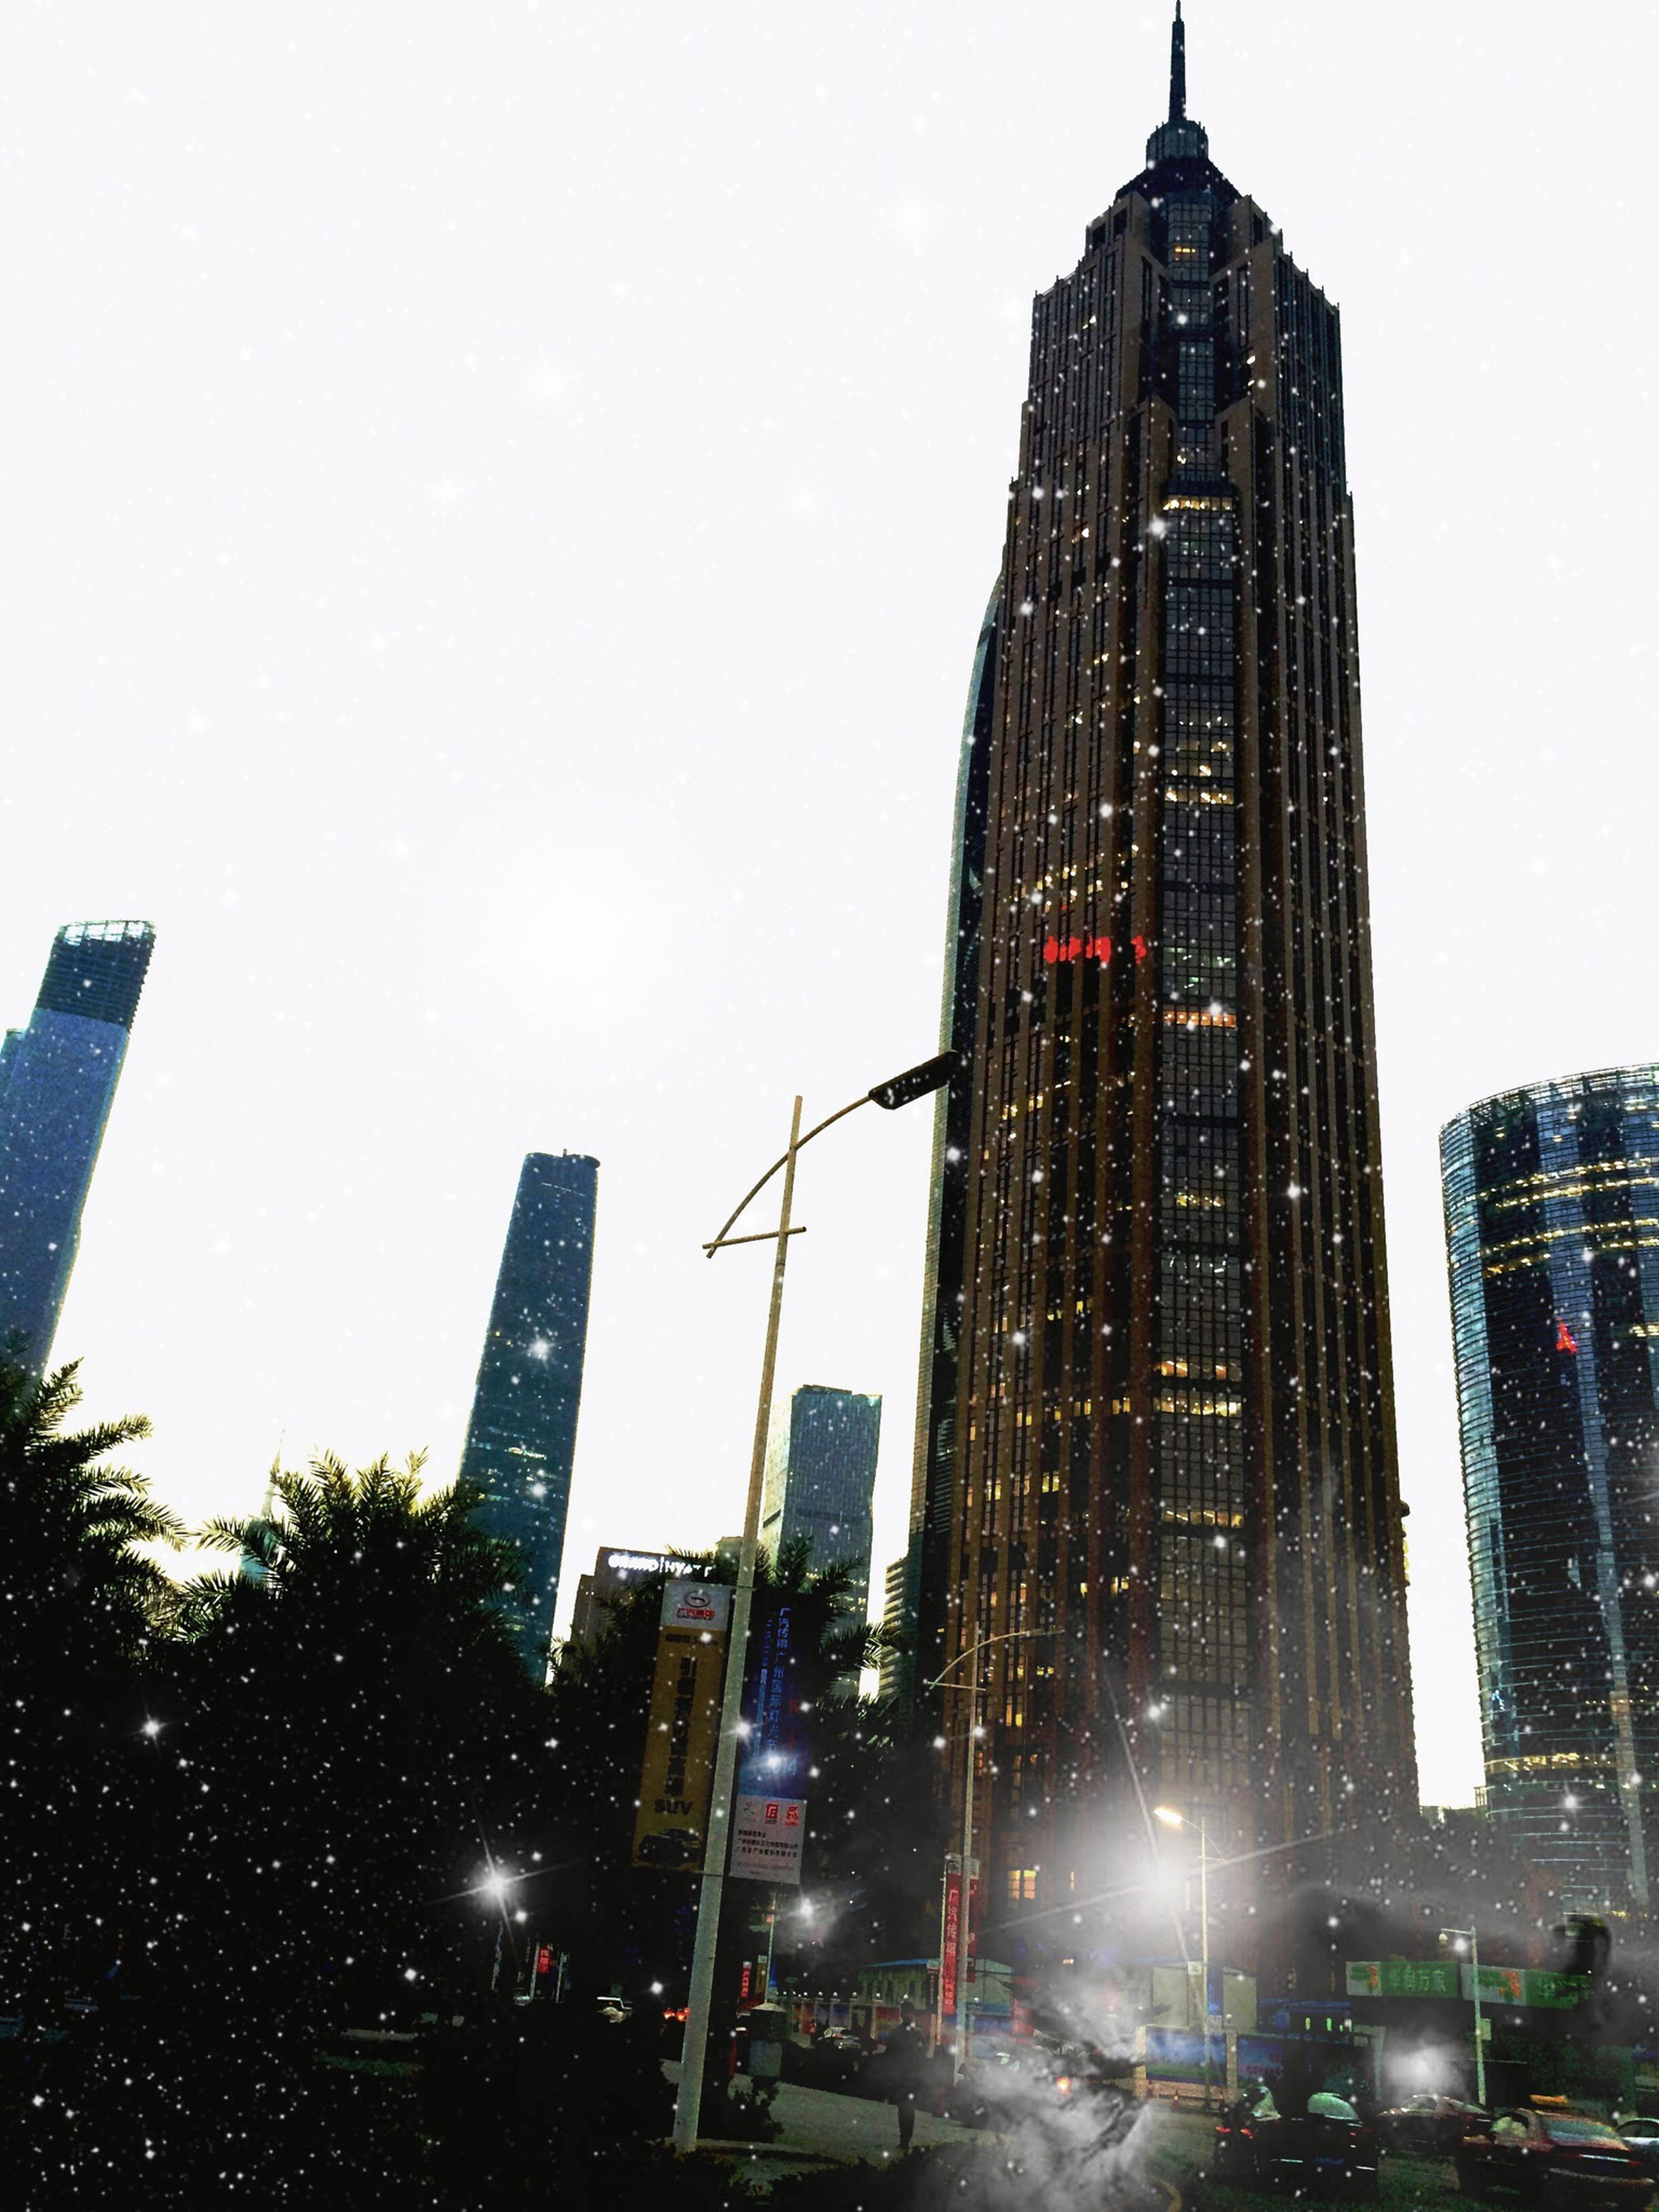 building exterior, architecture, built structure, city, skyscraper, tall - high, tower, office building, car, clear sky, modern, city life, land vehicle, capital cities, low angle view, transportation, street, building, city street, mode of transport